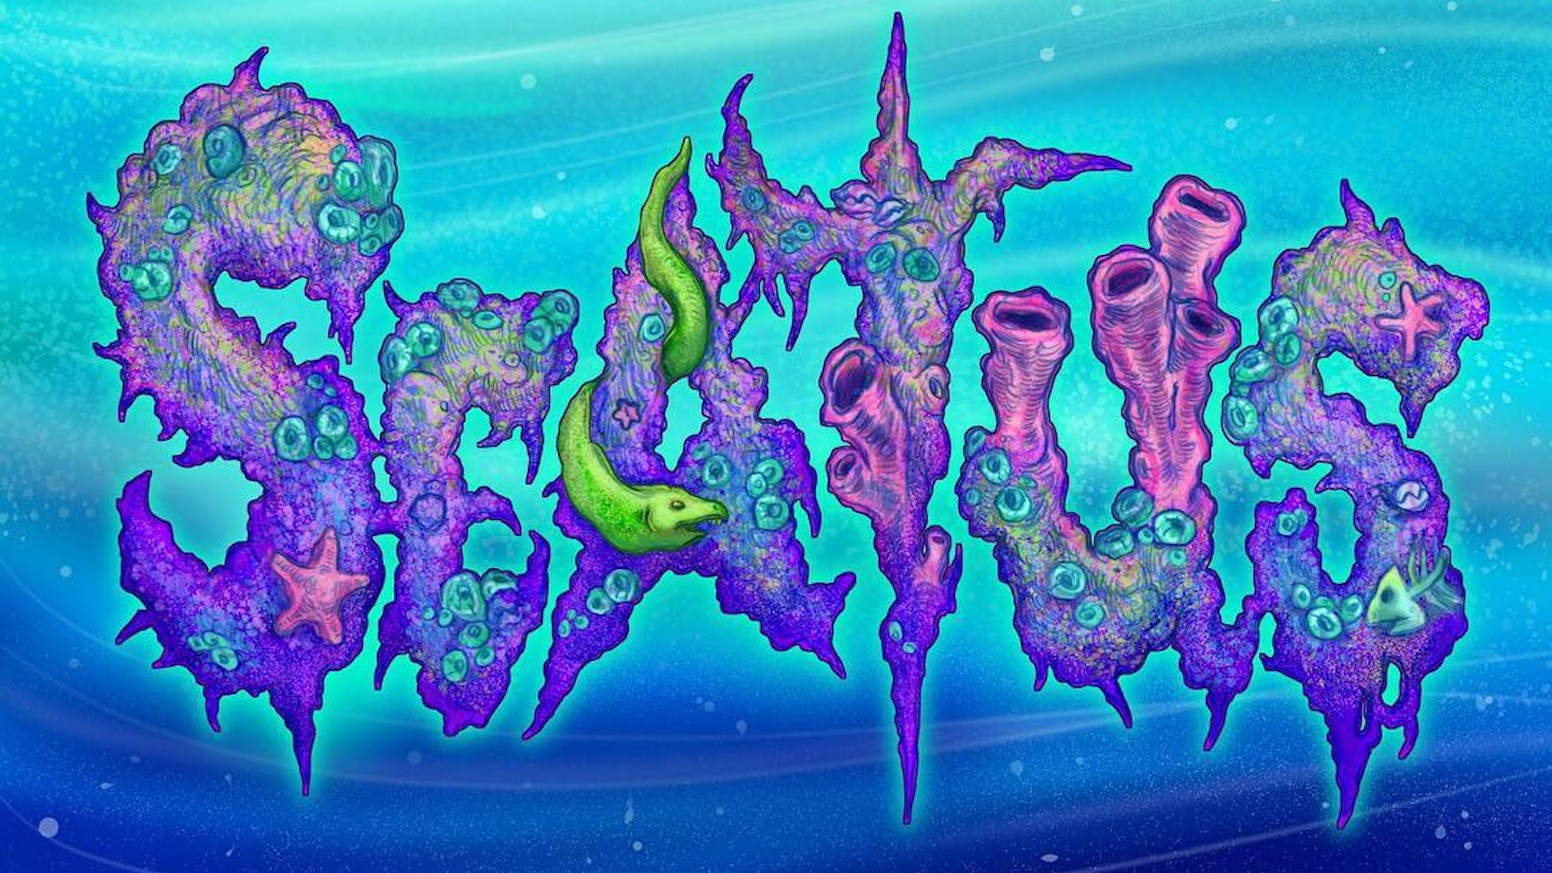 seatus the sea monster by gruesome toys kickstarter